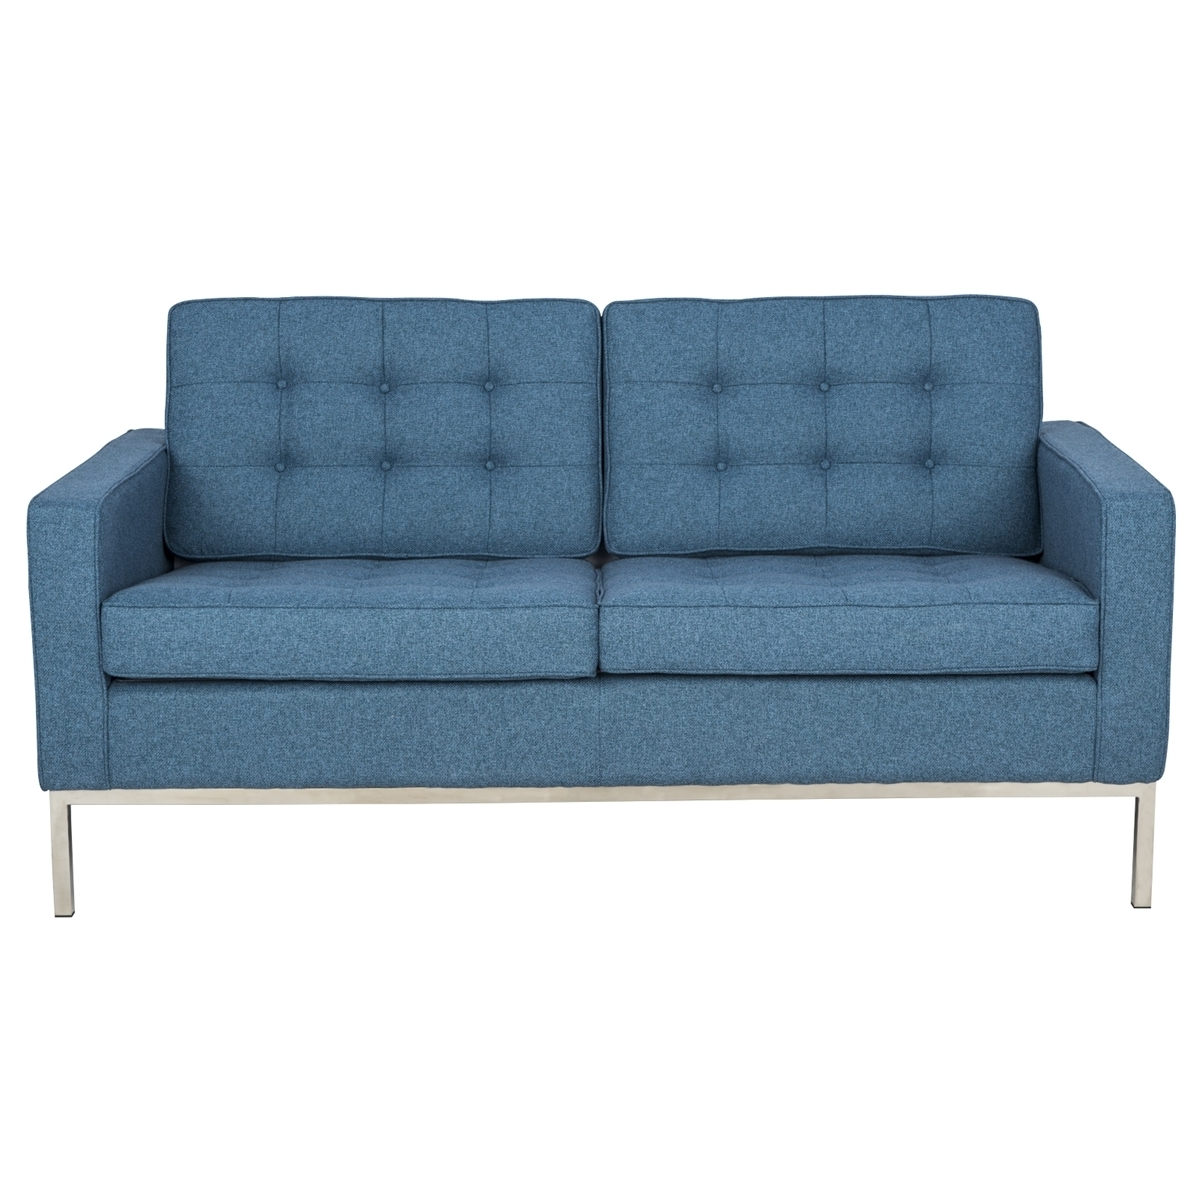 Modern Florence Style Loveseat Sofa In Blue Tweed Cashmere Wool For Widely Used Florence Sofas And Loveseats (View 3 of 20)